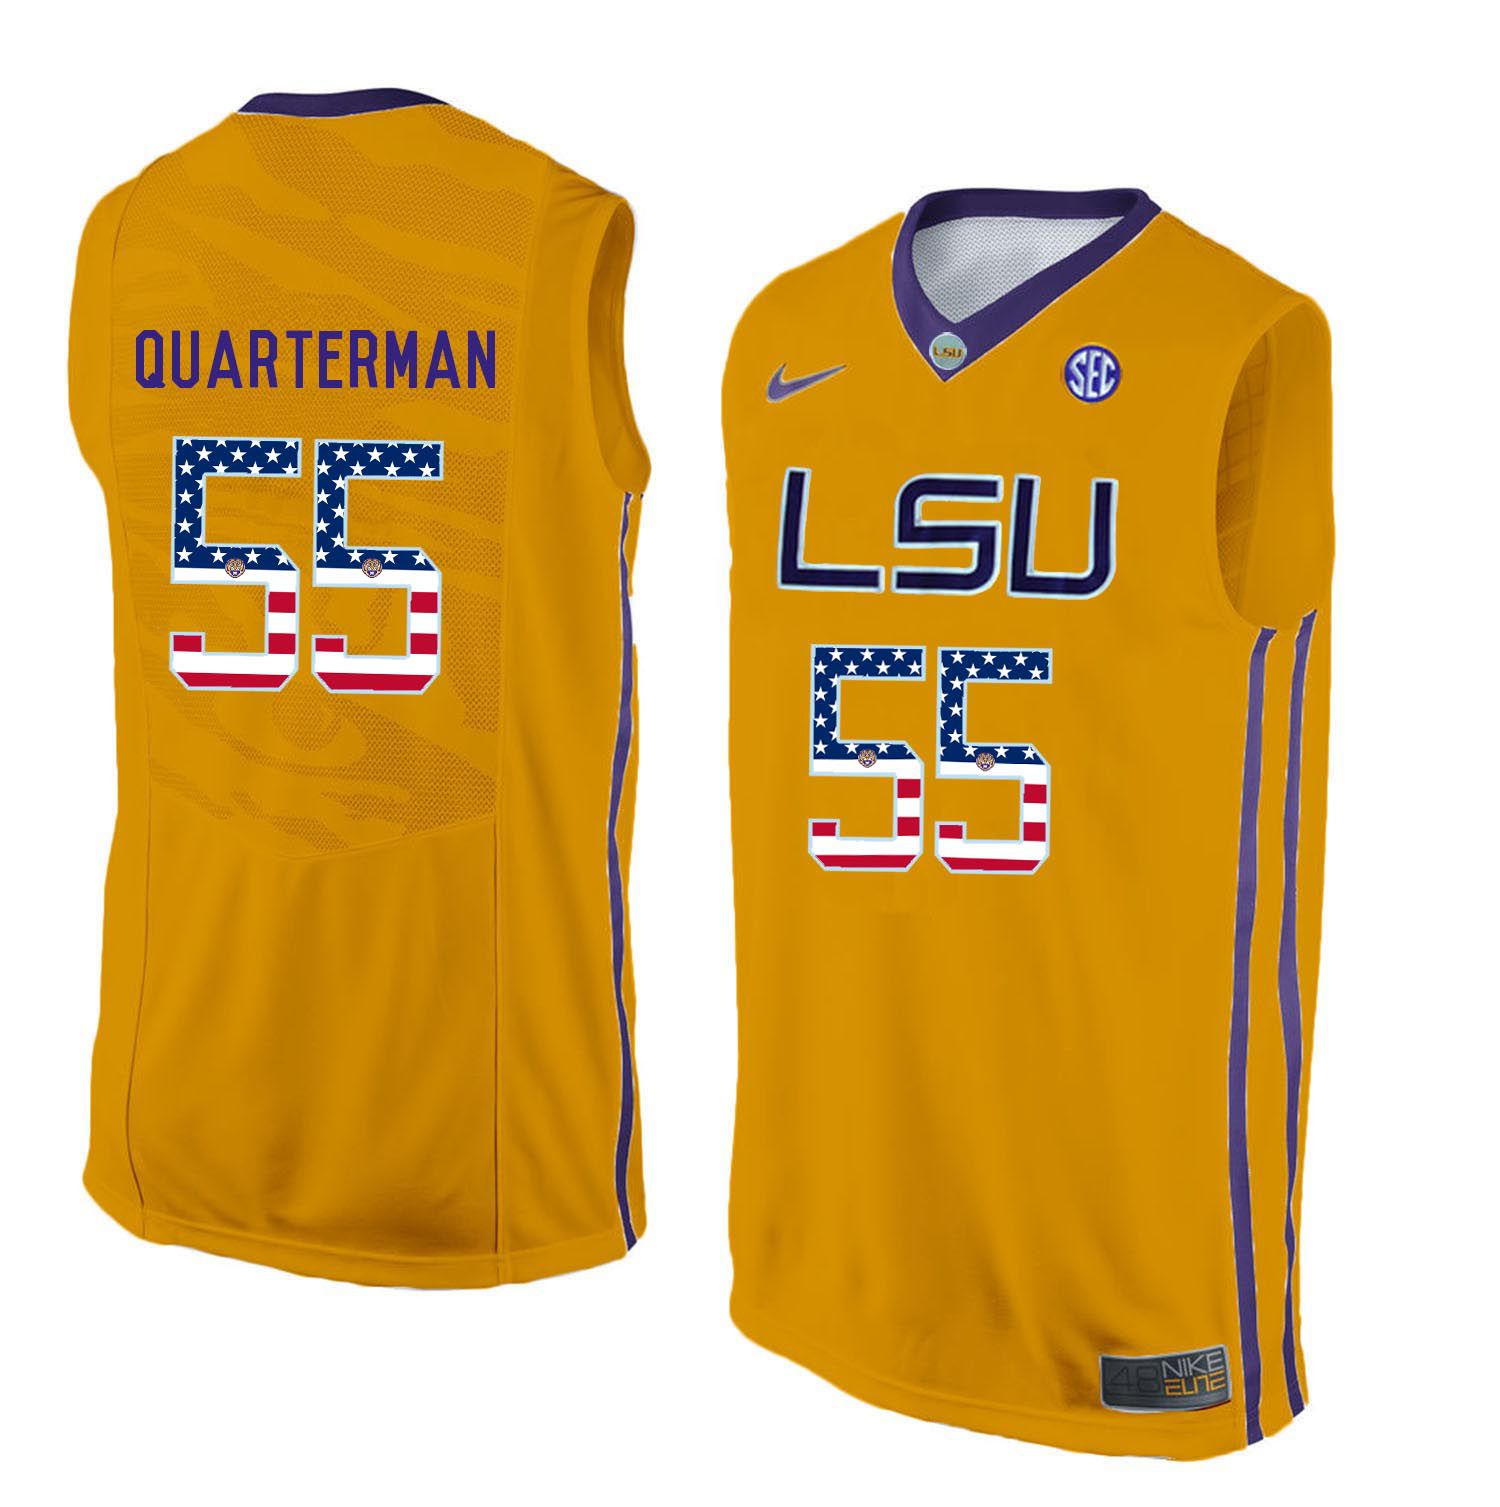 Men LSU Tigers 55 Quarterman Yellow Flag Customized NCAA Jerseys